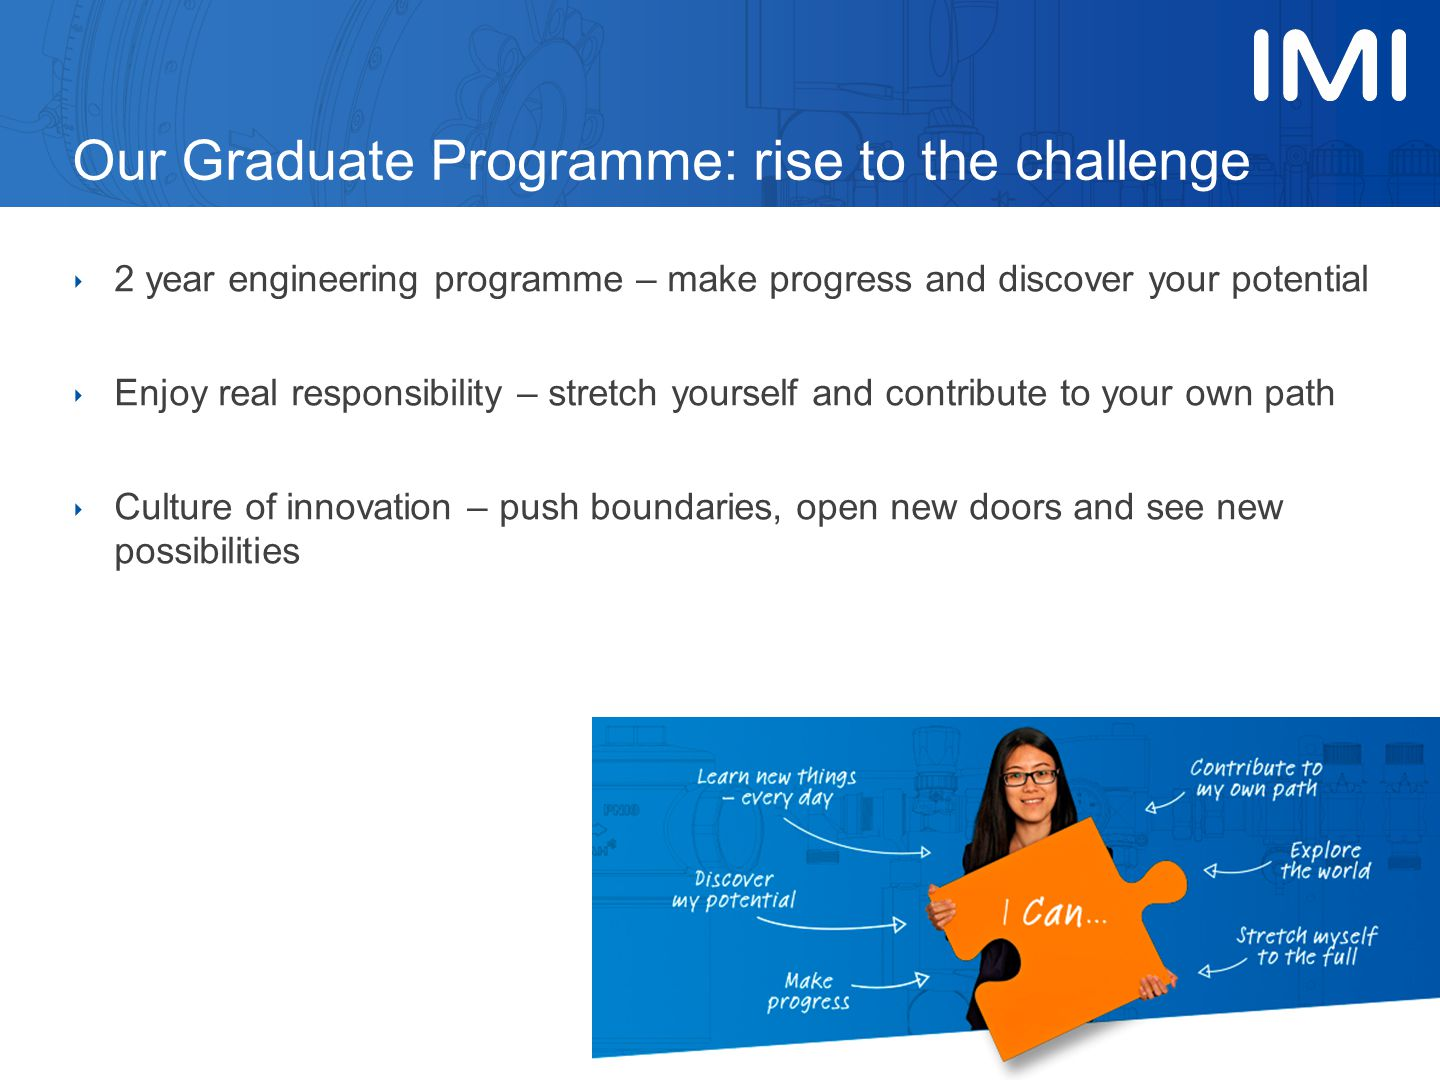 Our Graduate Programme: rise to the challenge ‣ 2 year engineering programme – make progress and discover your potential ‣ Enjoy real responsibility – stretch yourself and contribute to your own path ‣ Culture of innovation – push boundaries, open new doors and see new possibilities